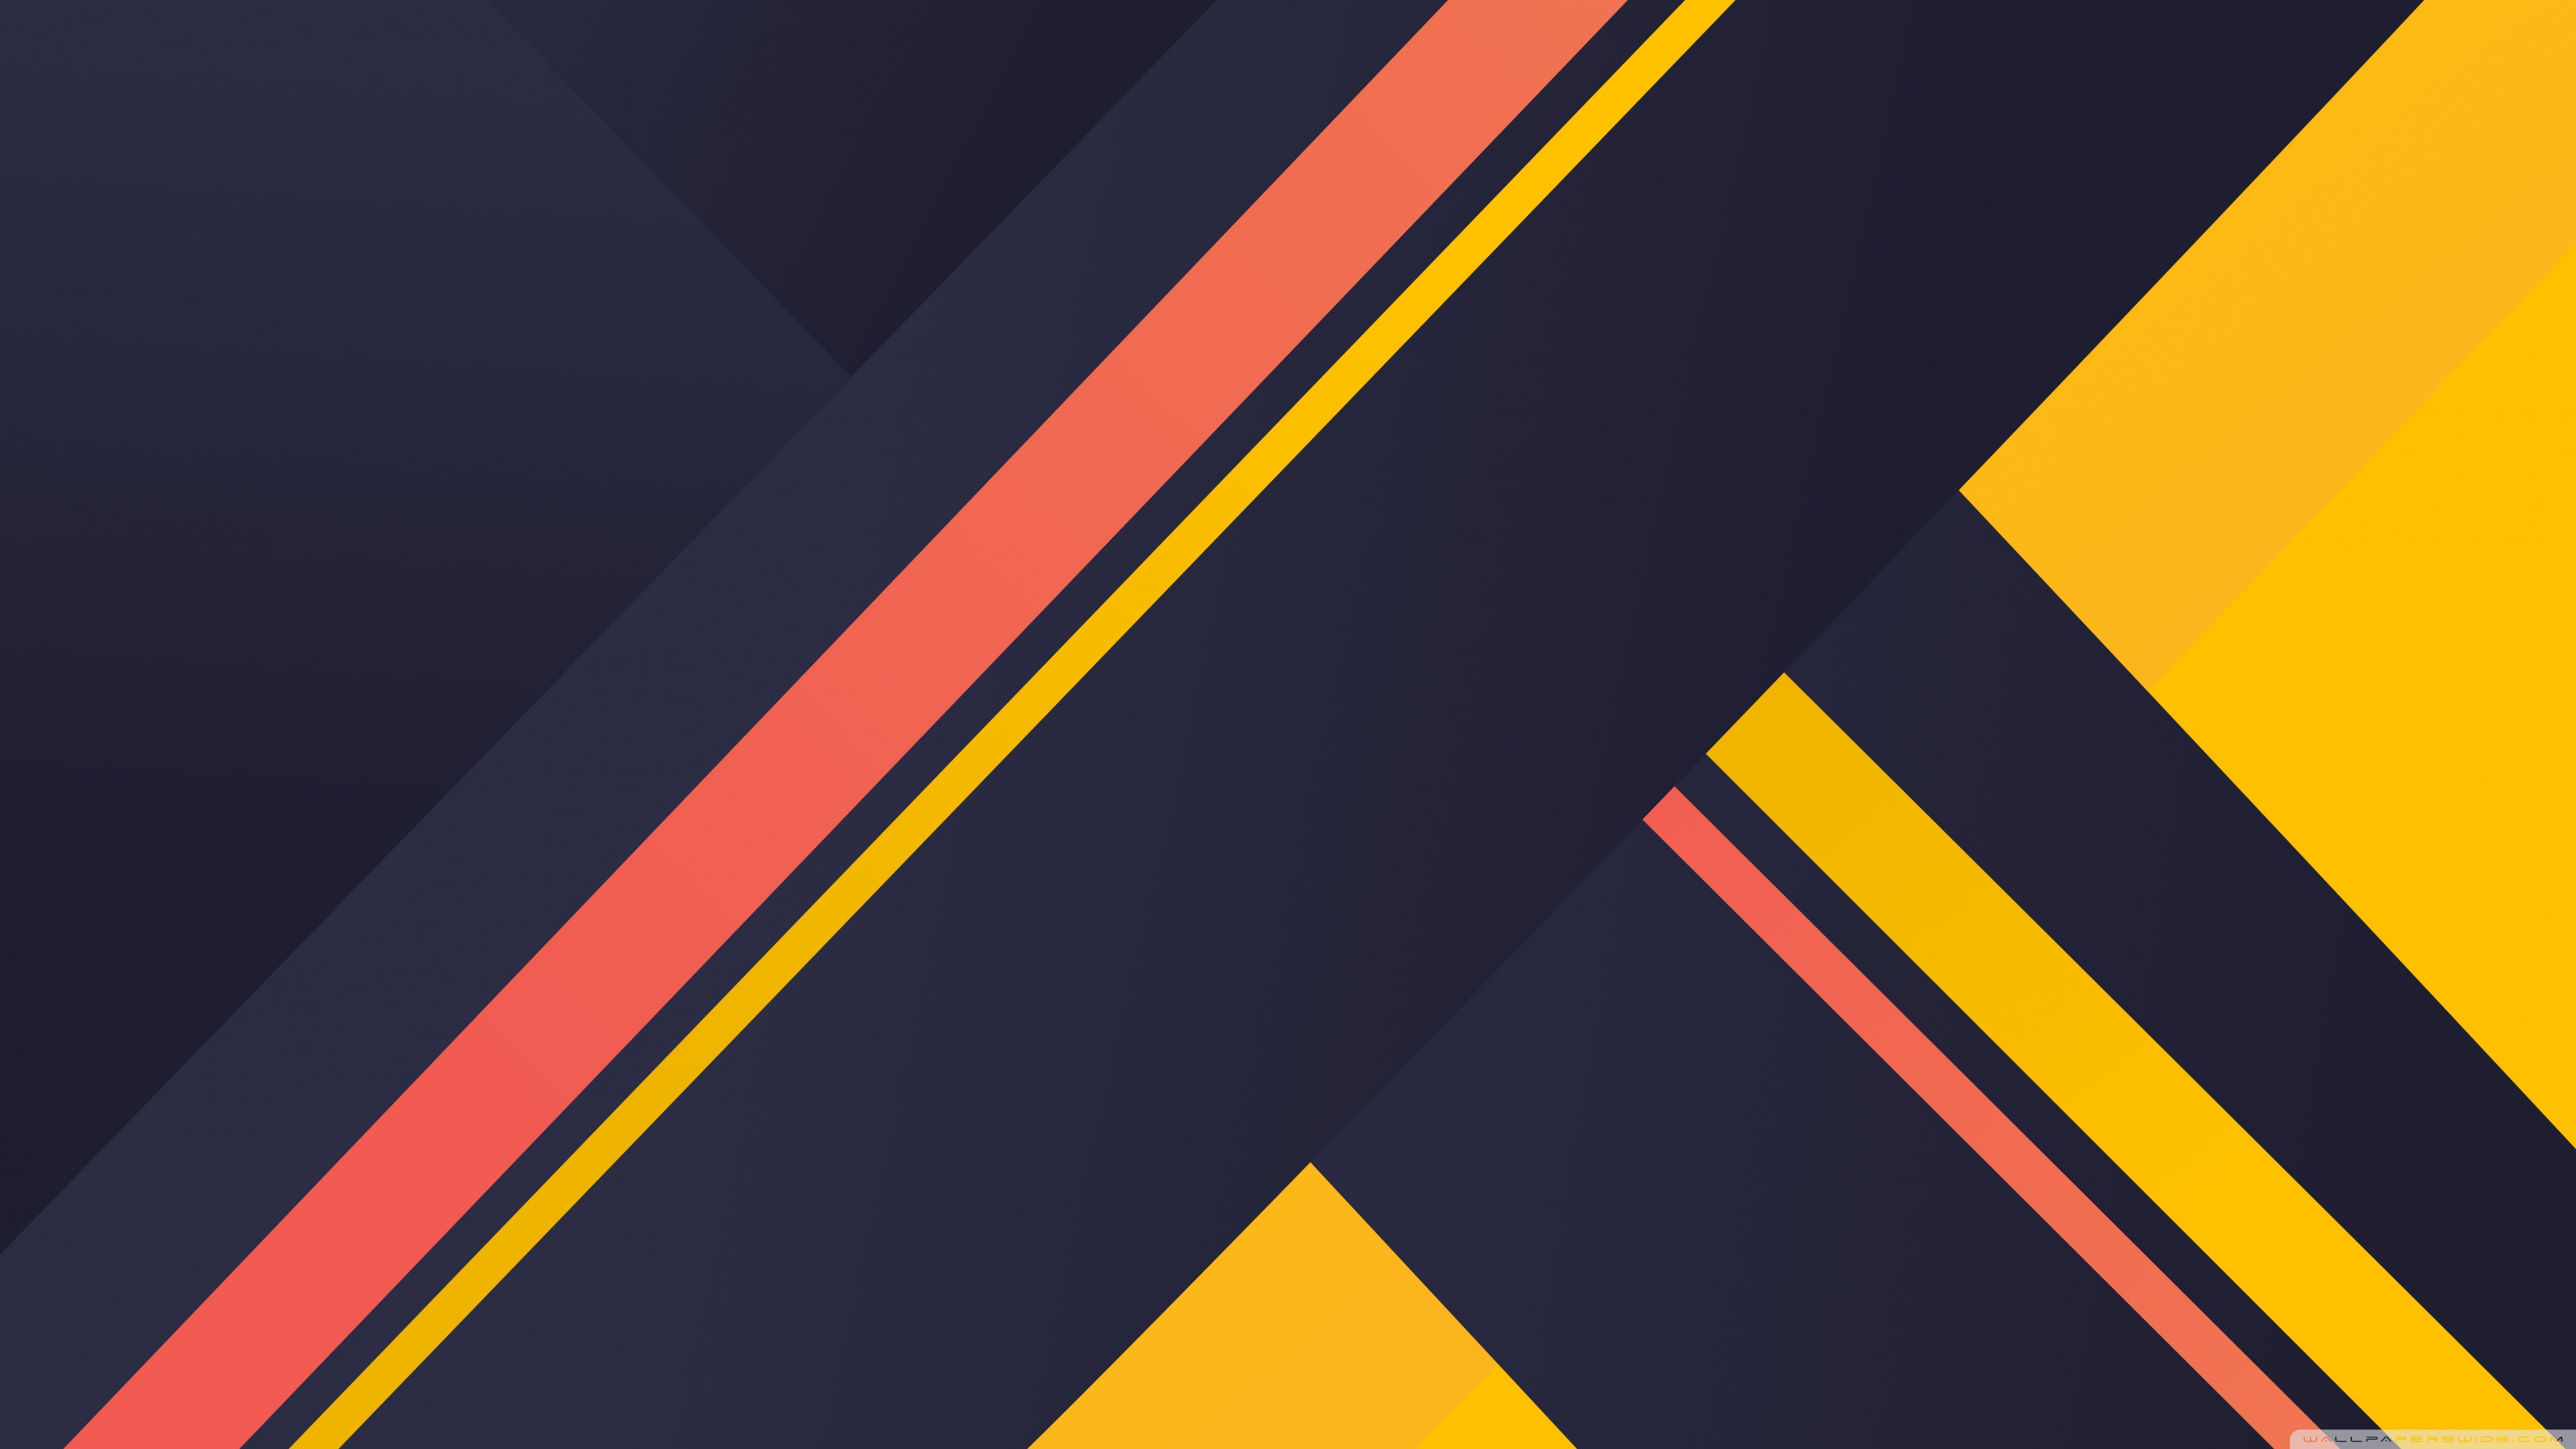 abstract geometric background 4k